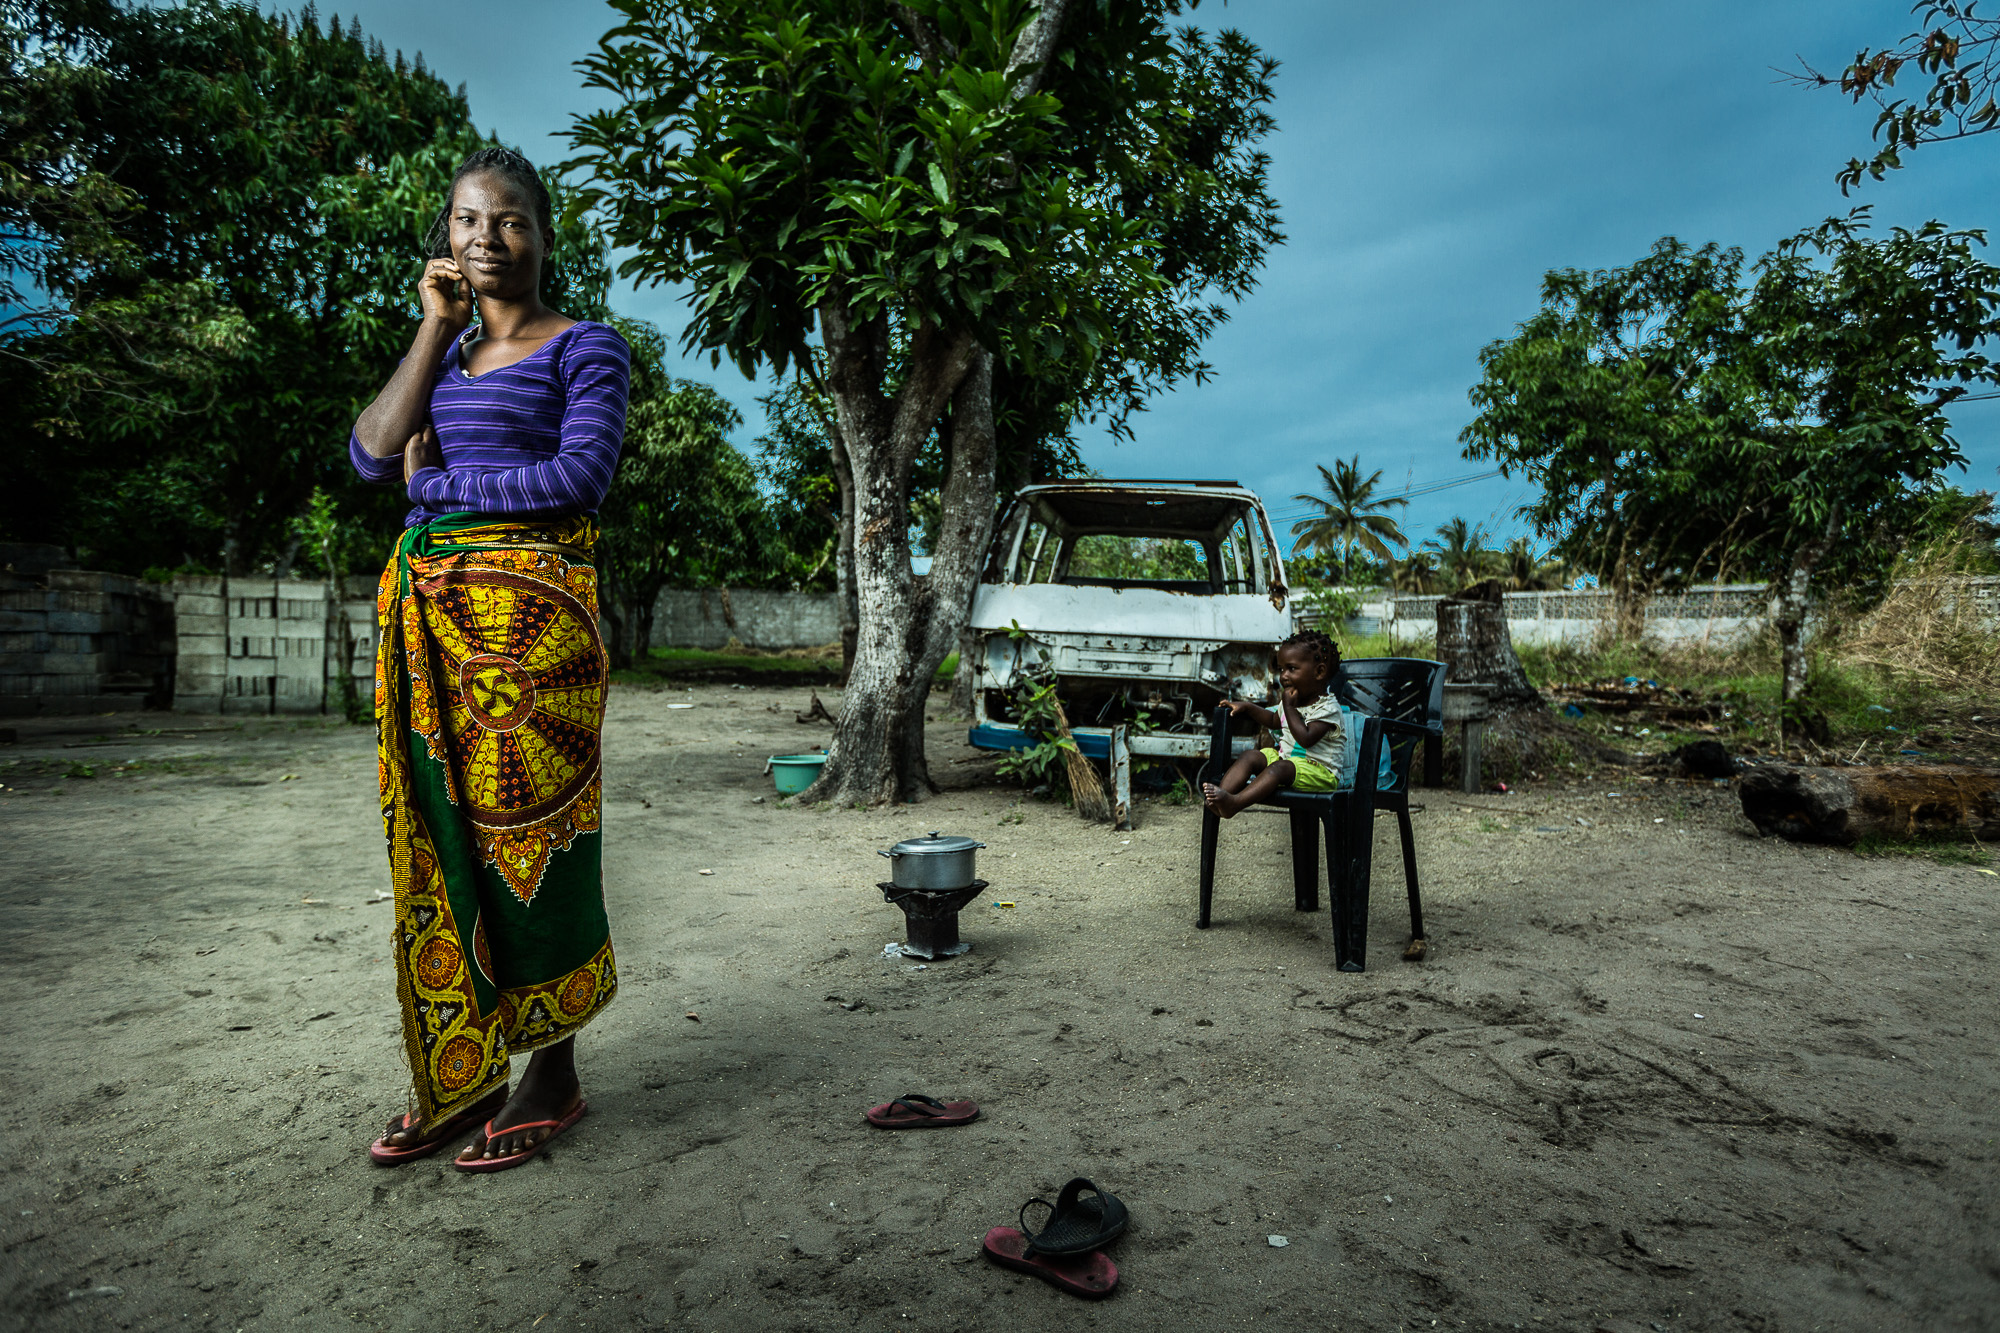 Salima, a sex worker in Mozambique, at her home in Beira.